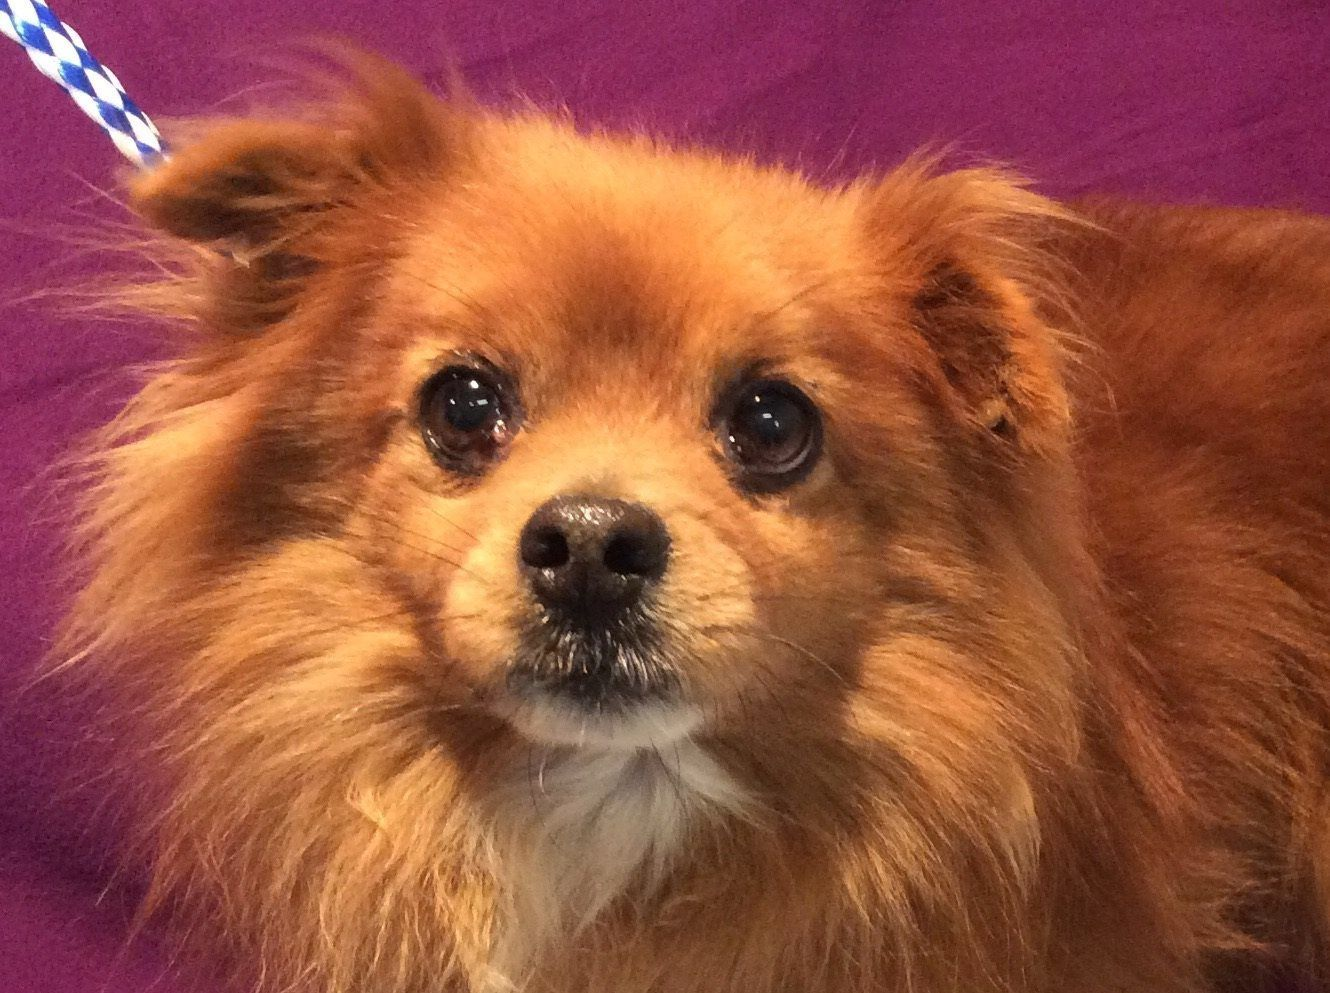 Pomeranian Dog For Adoption In Pomona Ca Adn 504345 On Puppyfinder Com Gender Male Age Dog Adoption Pomeranian Dog Dogs